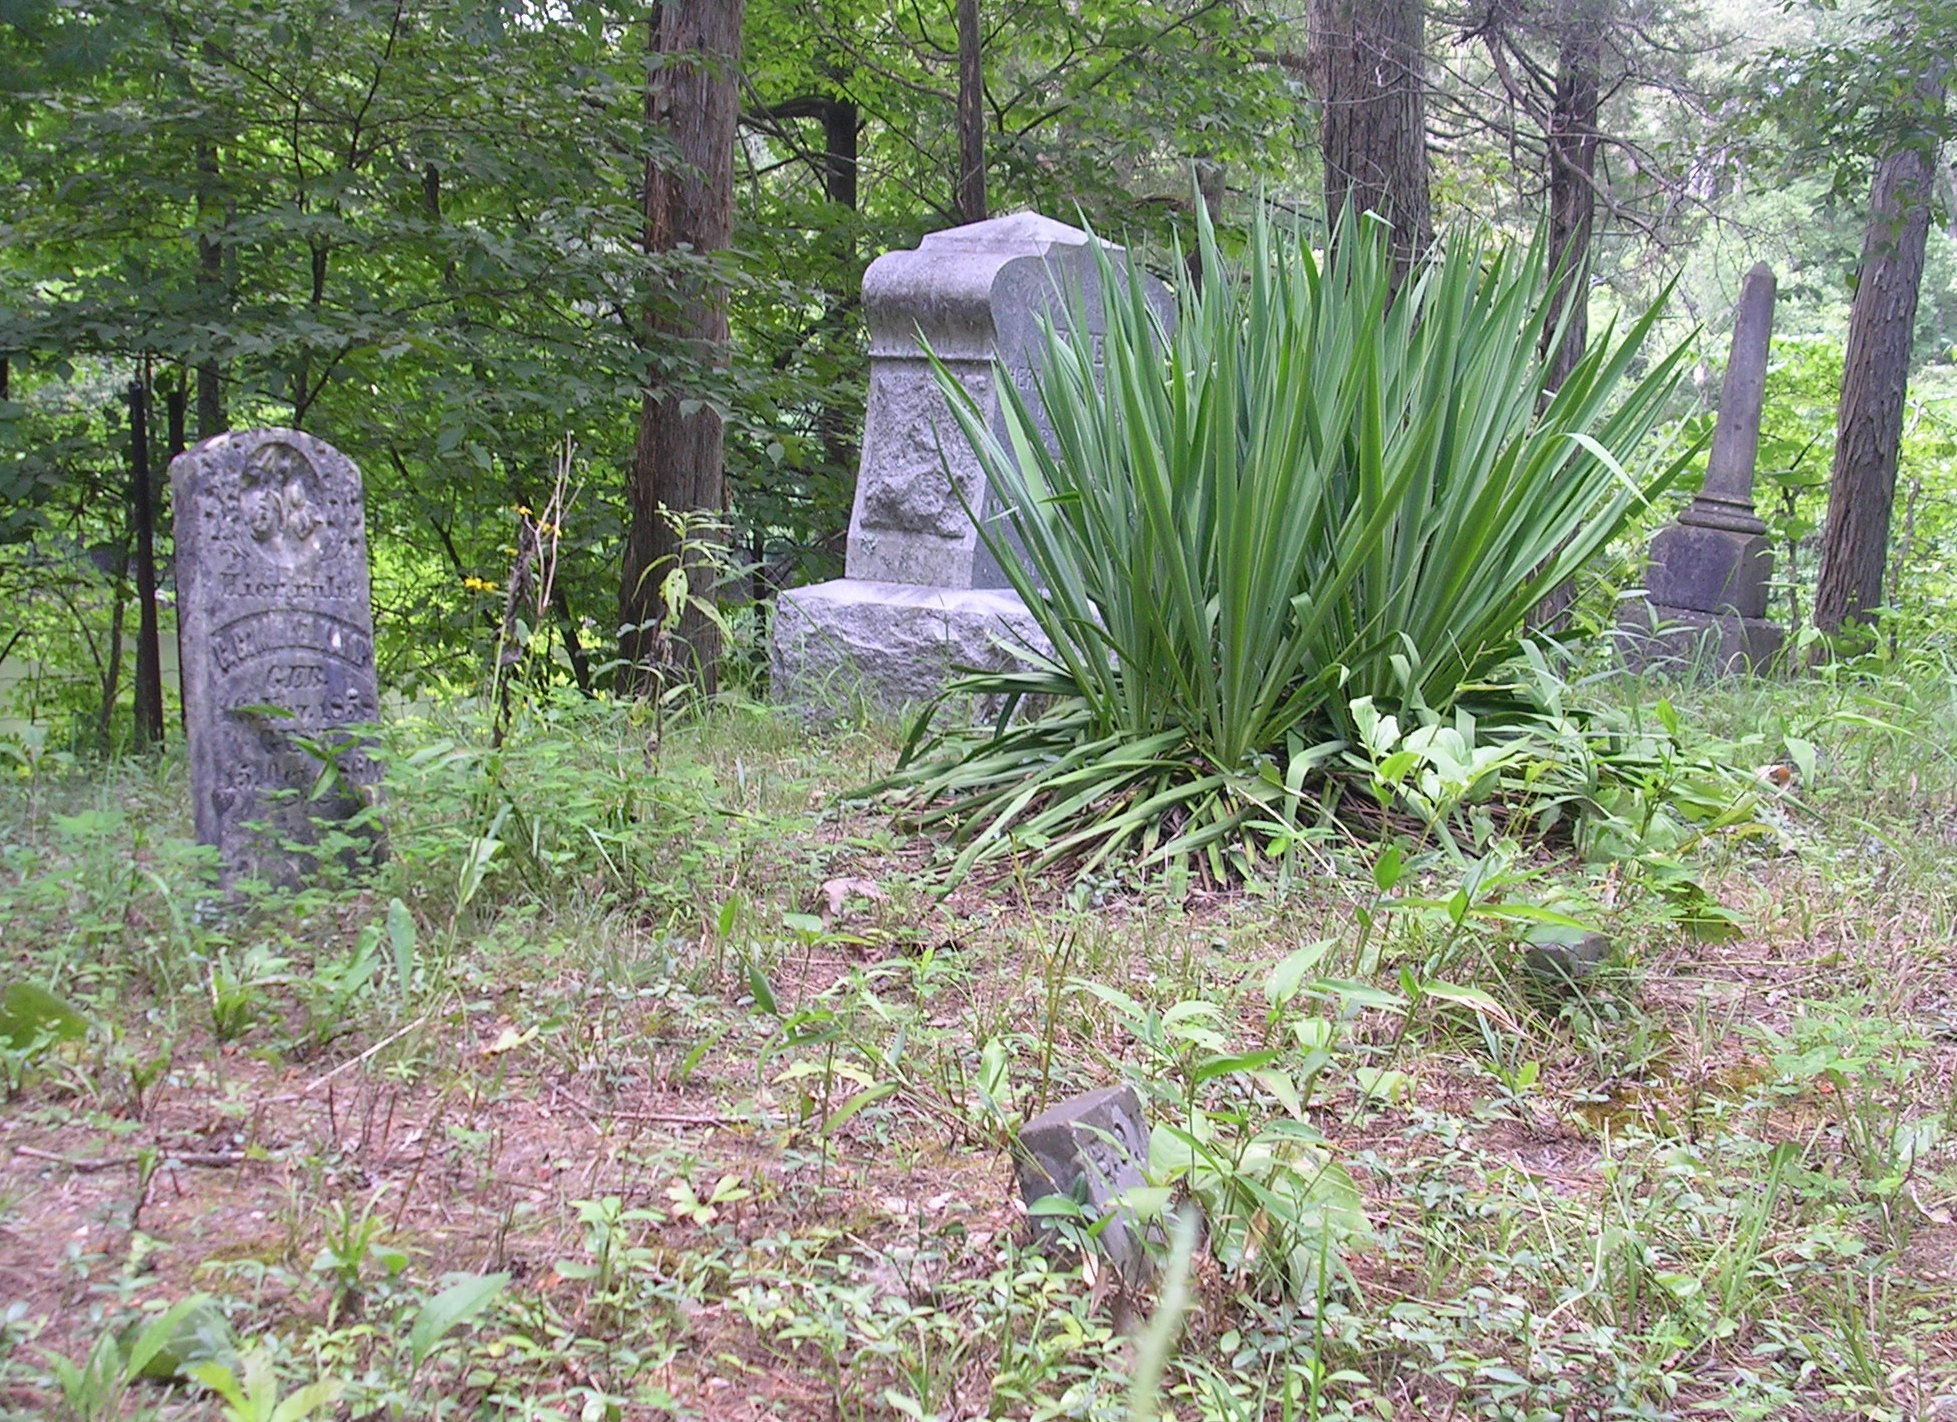 Another Grave Yard on Innsbrook Project